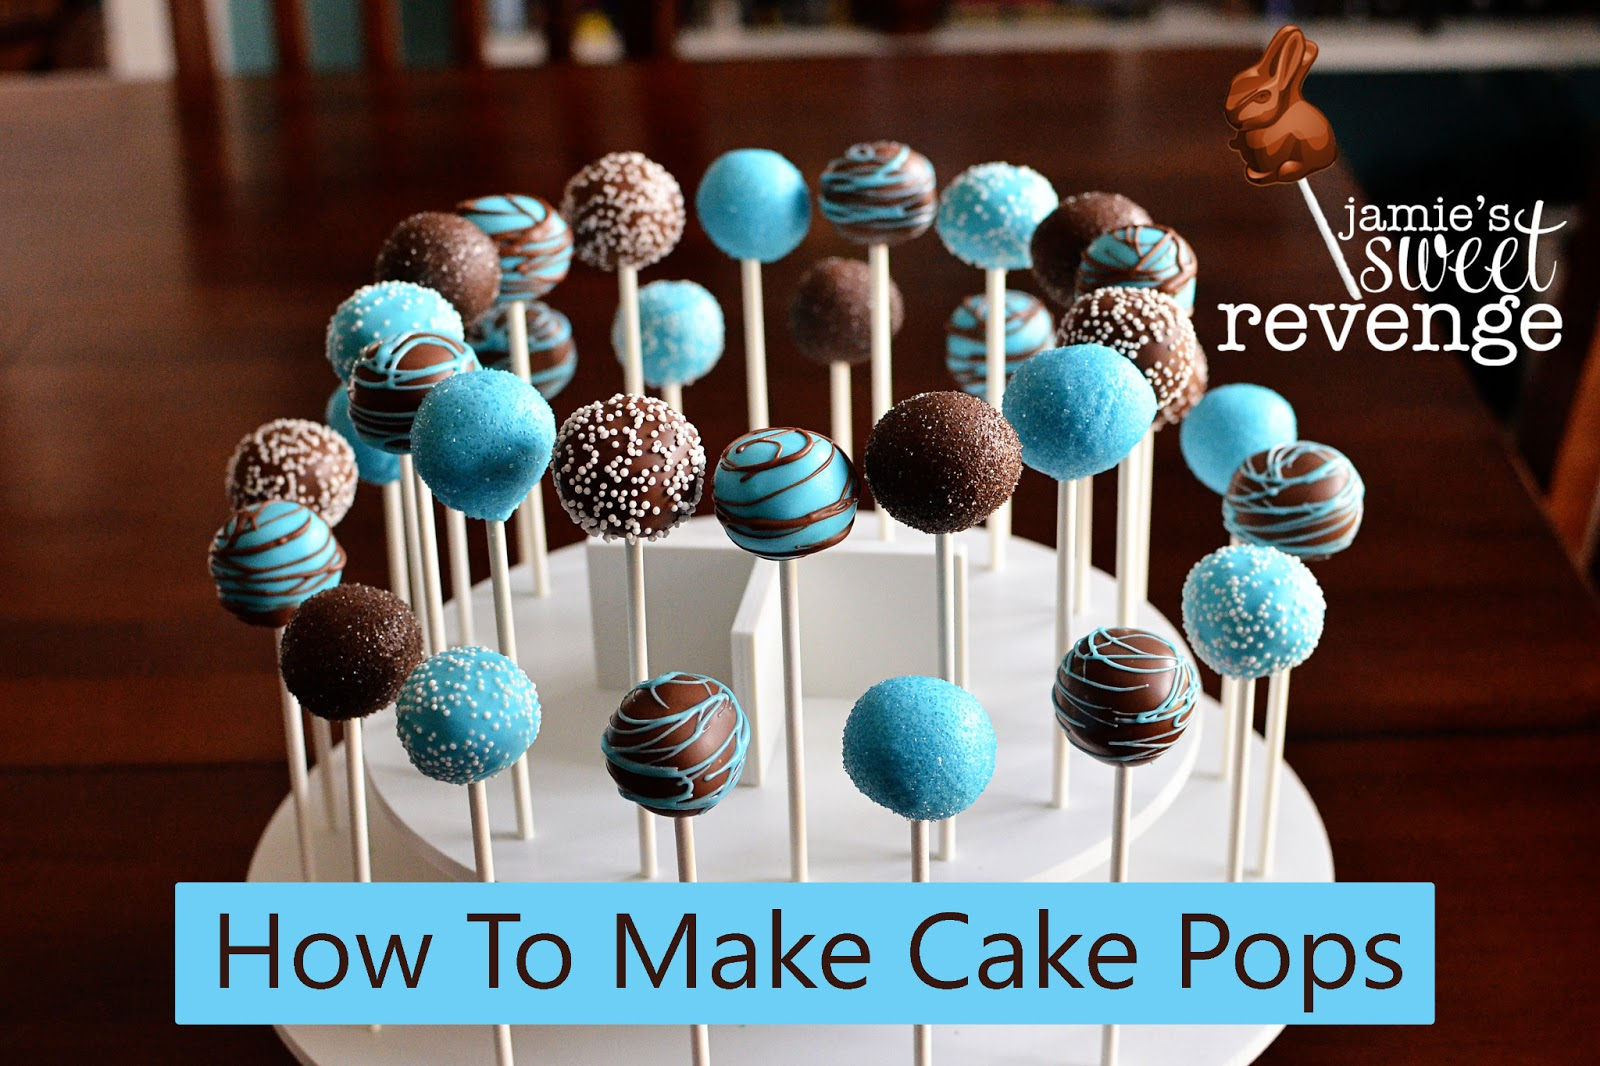 Cake Pop Pan Directions